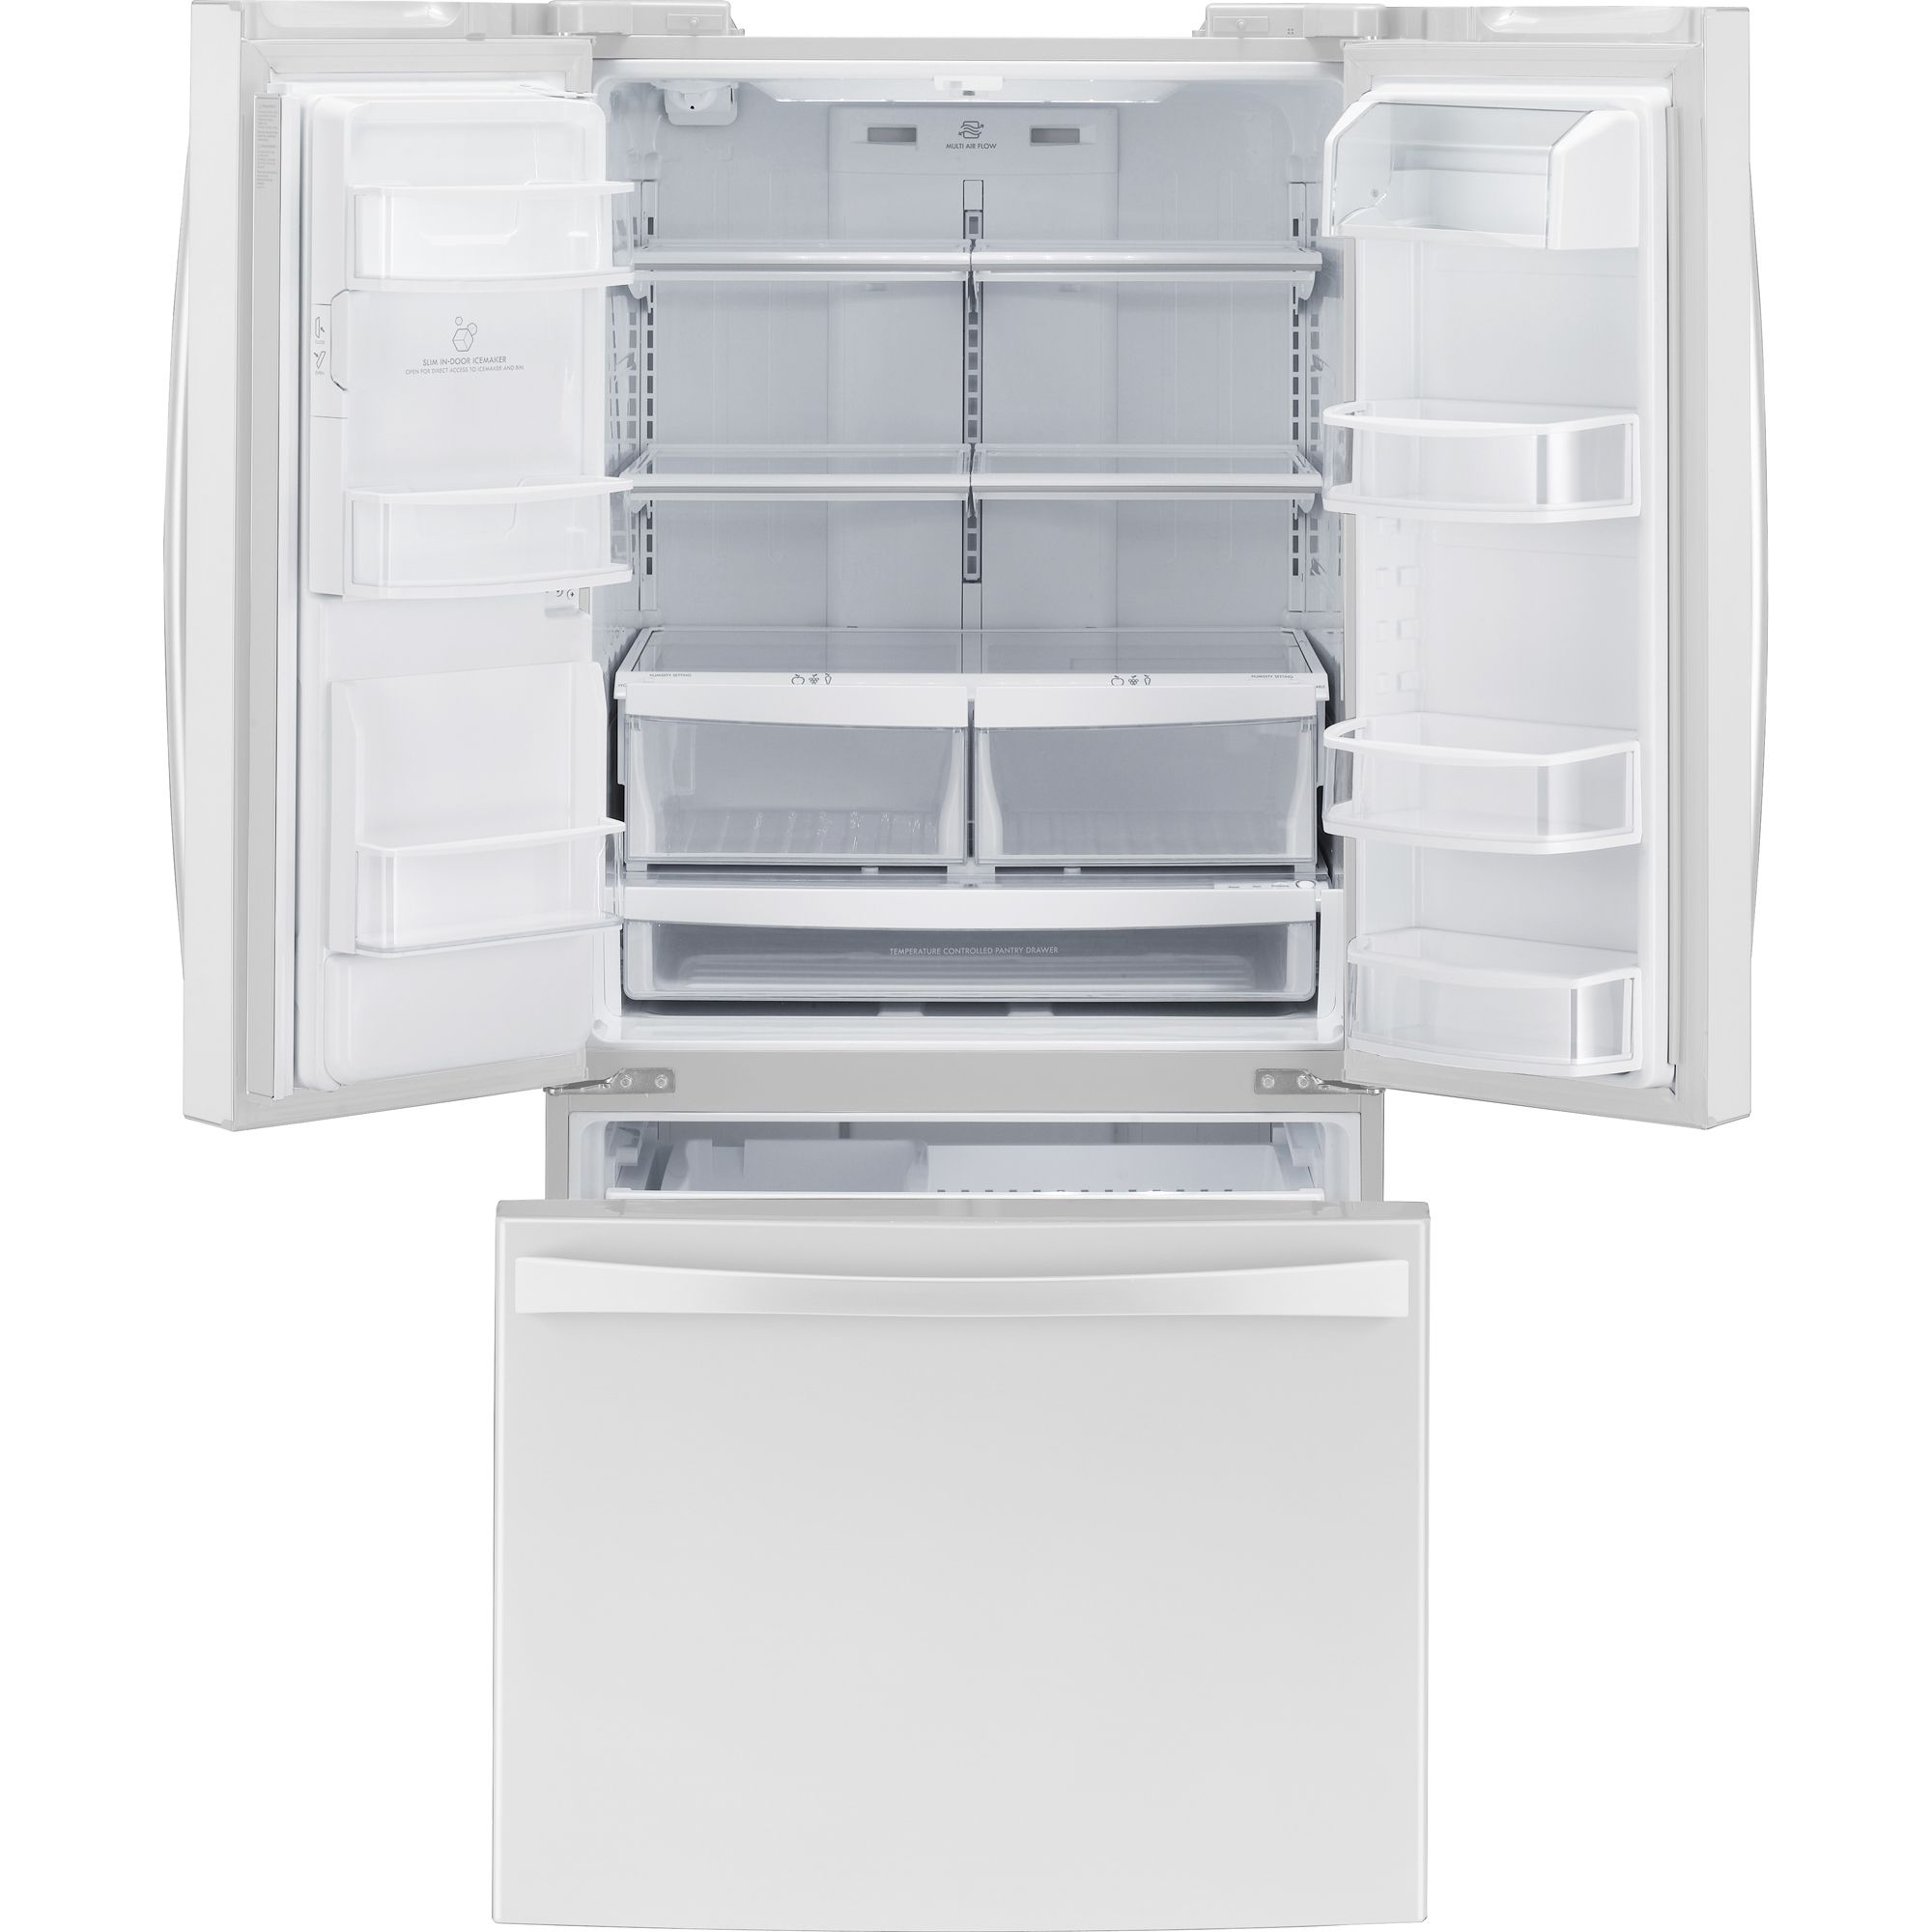 25.0 cu. ft. French-Door Bottom-Freezer Refrigerator                                                                             at mygofer.com